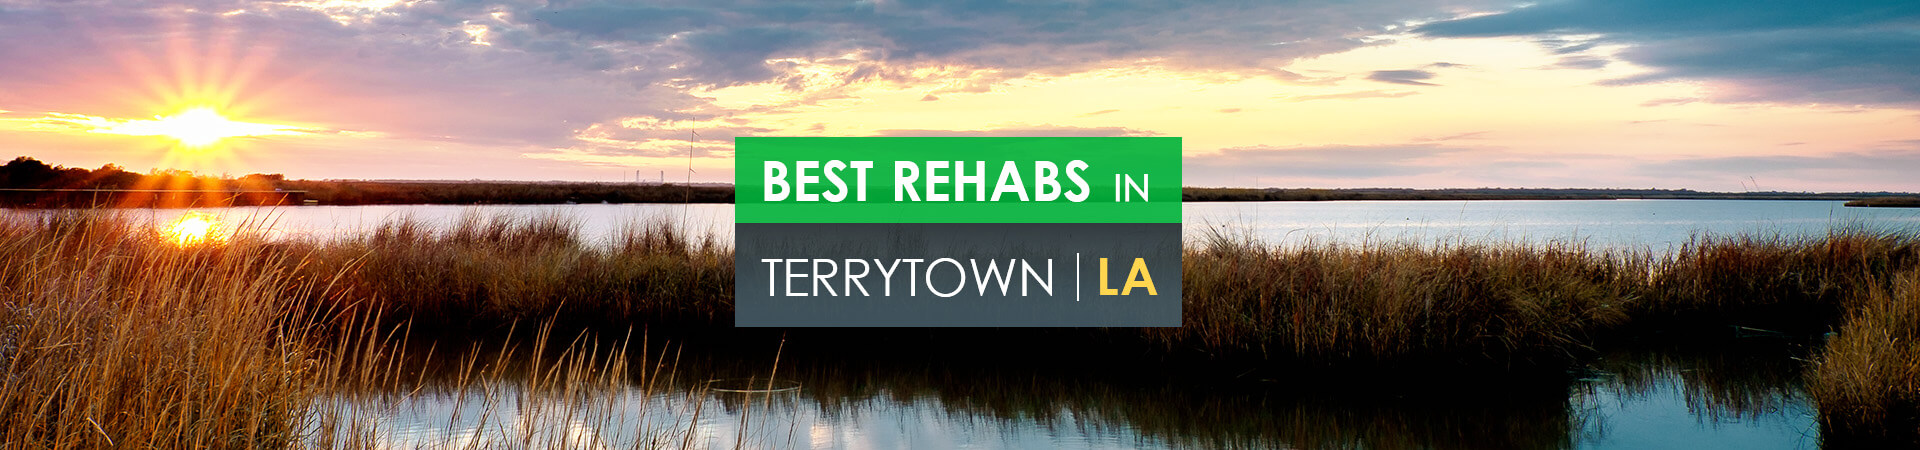 Best rehabs in Terrytown, LA